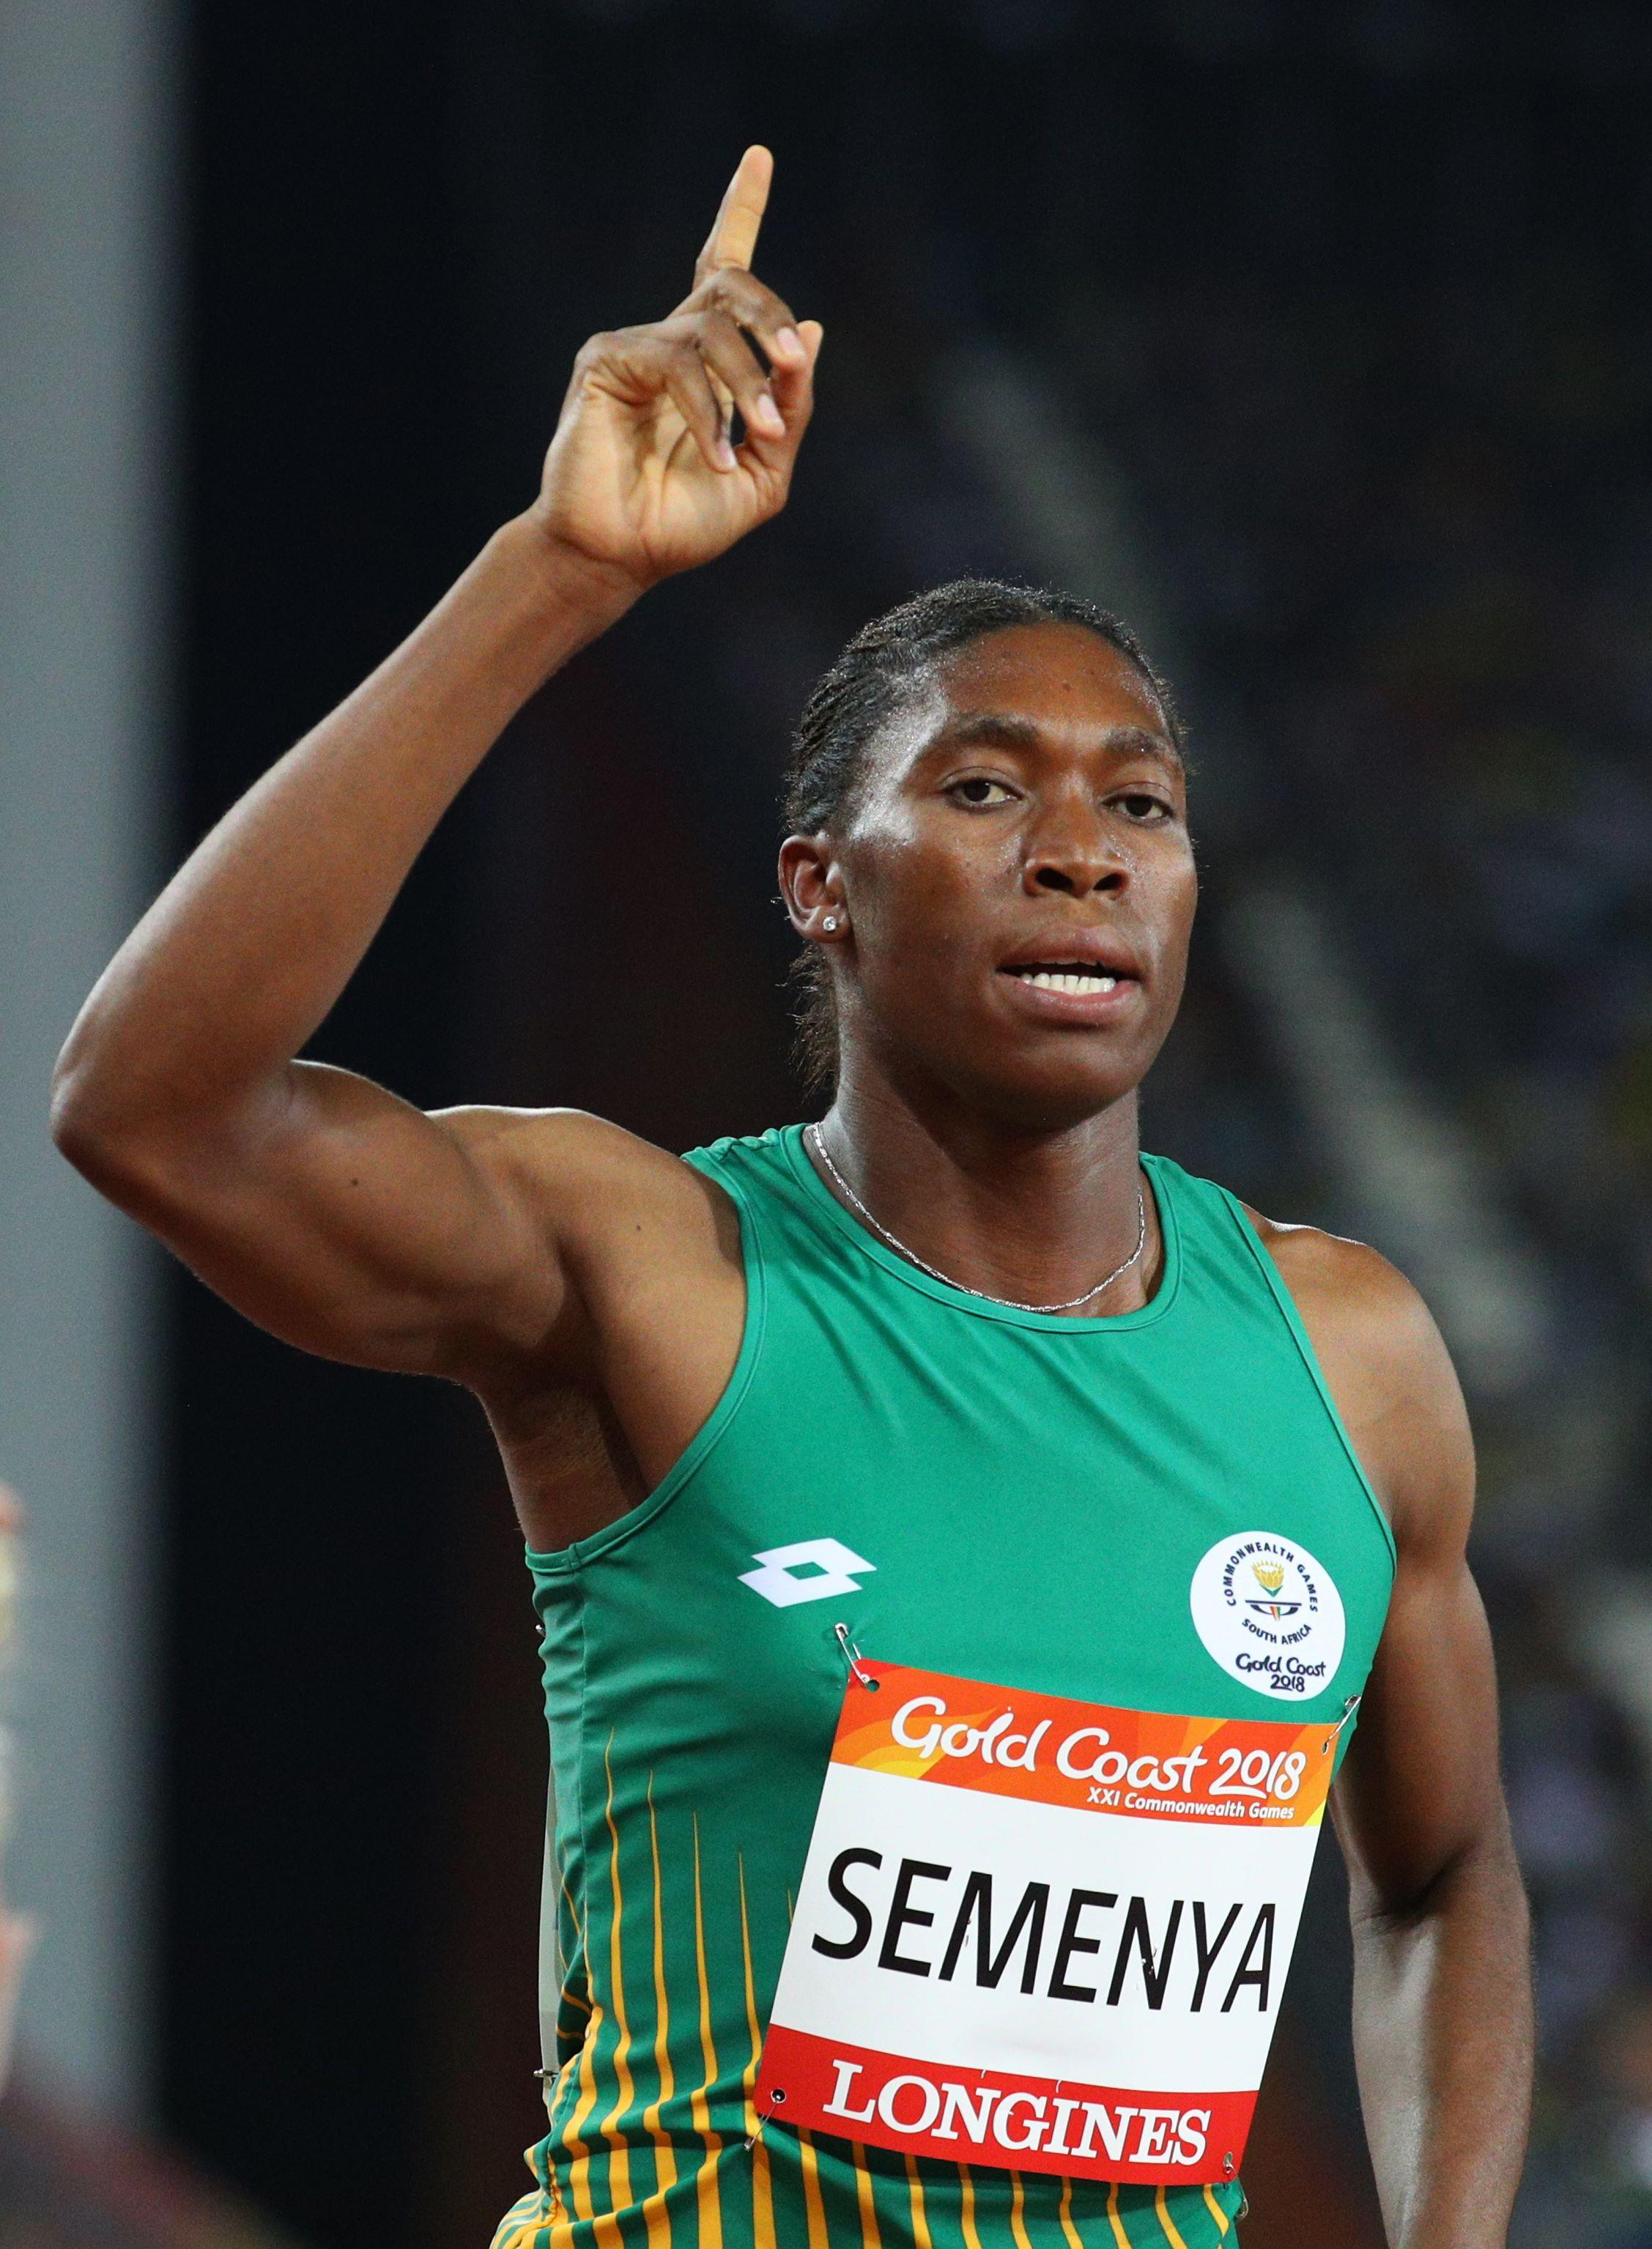 Caster Semenya will now have to take pills to reduce the natural levels of testosterone in her body